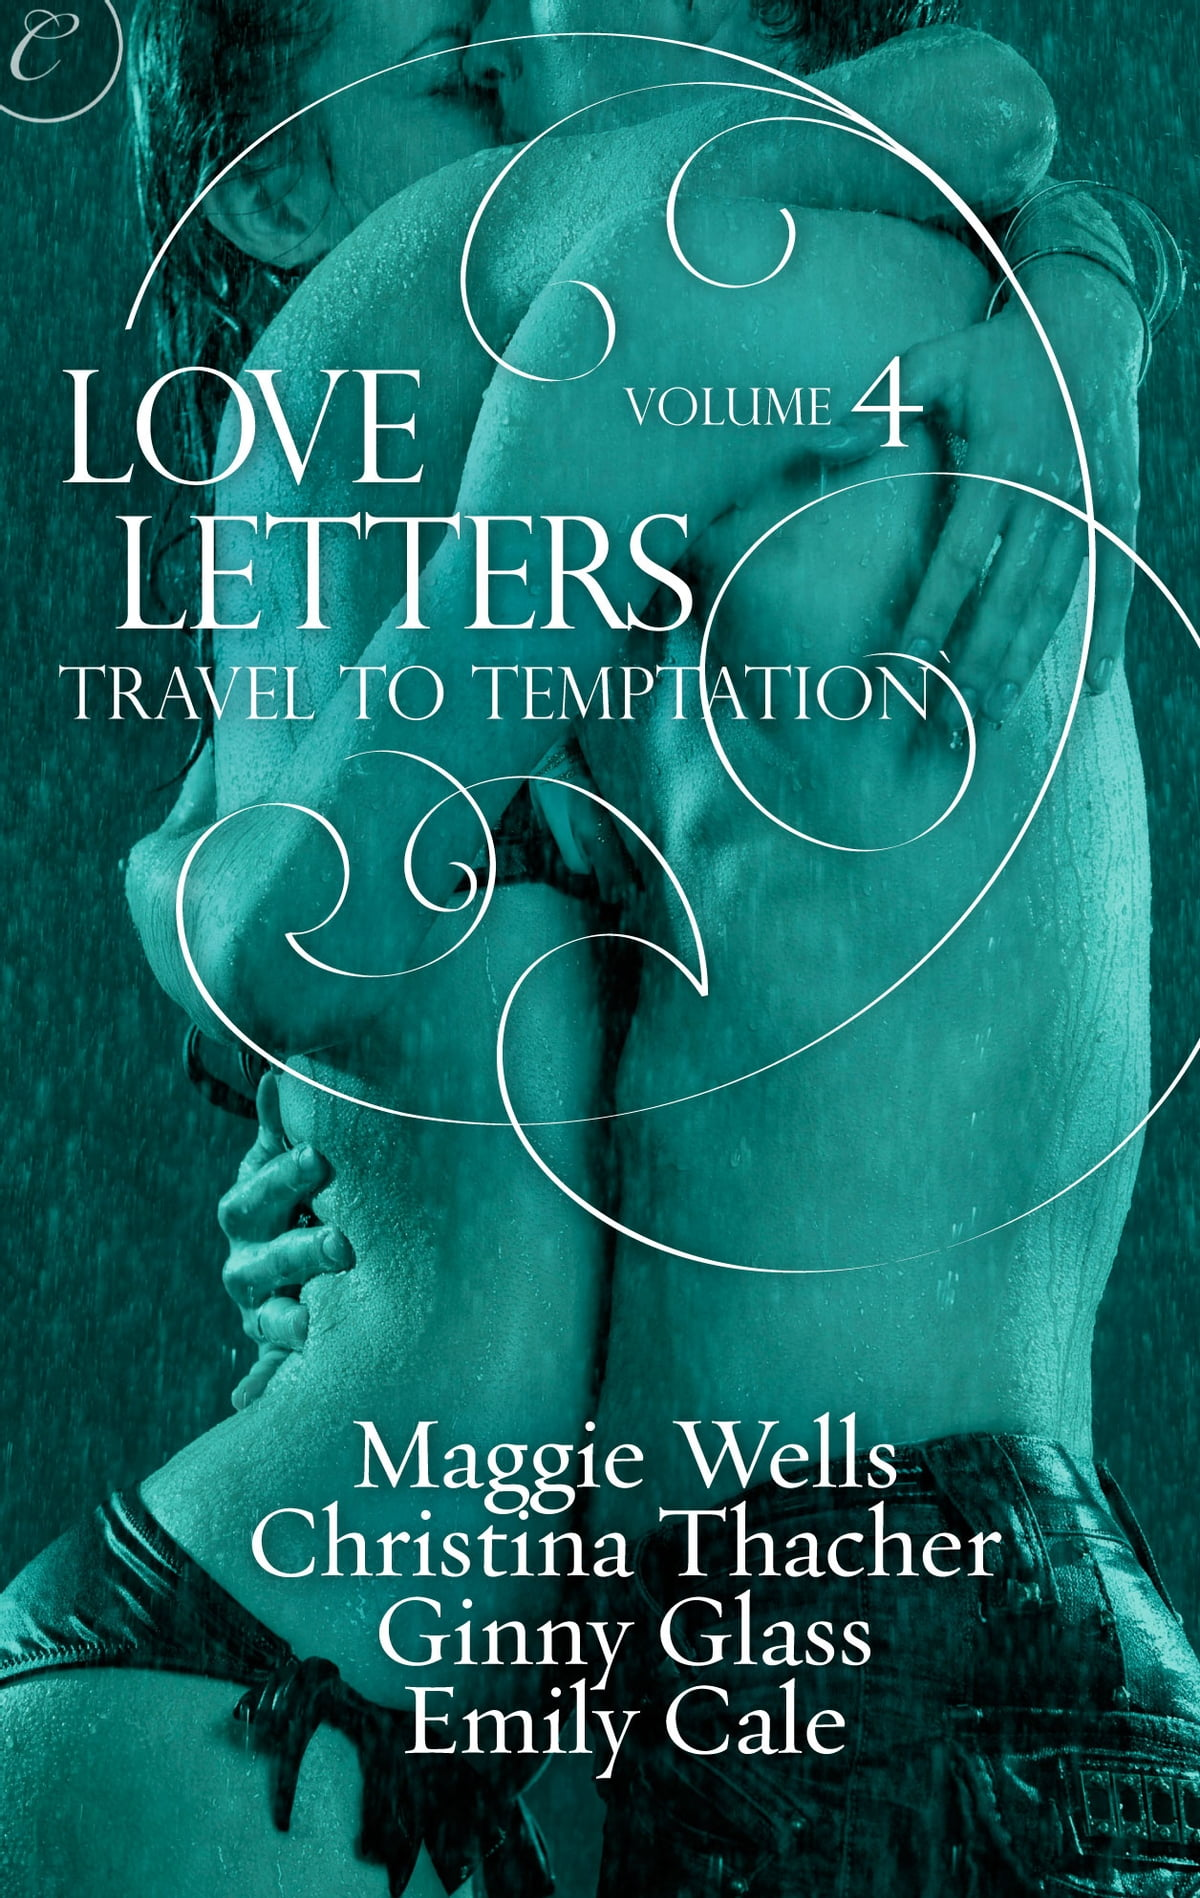 Love letters volume 4 travel to temptation ebook by ginny glass love letters volume 4 travel to temptation ebook by ginny glass 9781426895937 rakuten kobo fandeluxe Epub